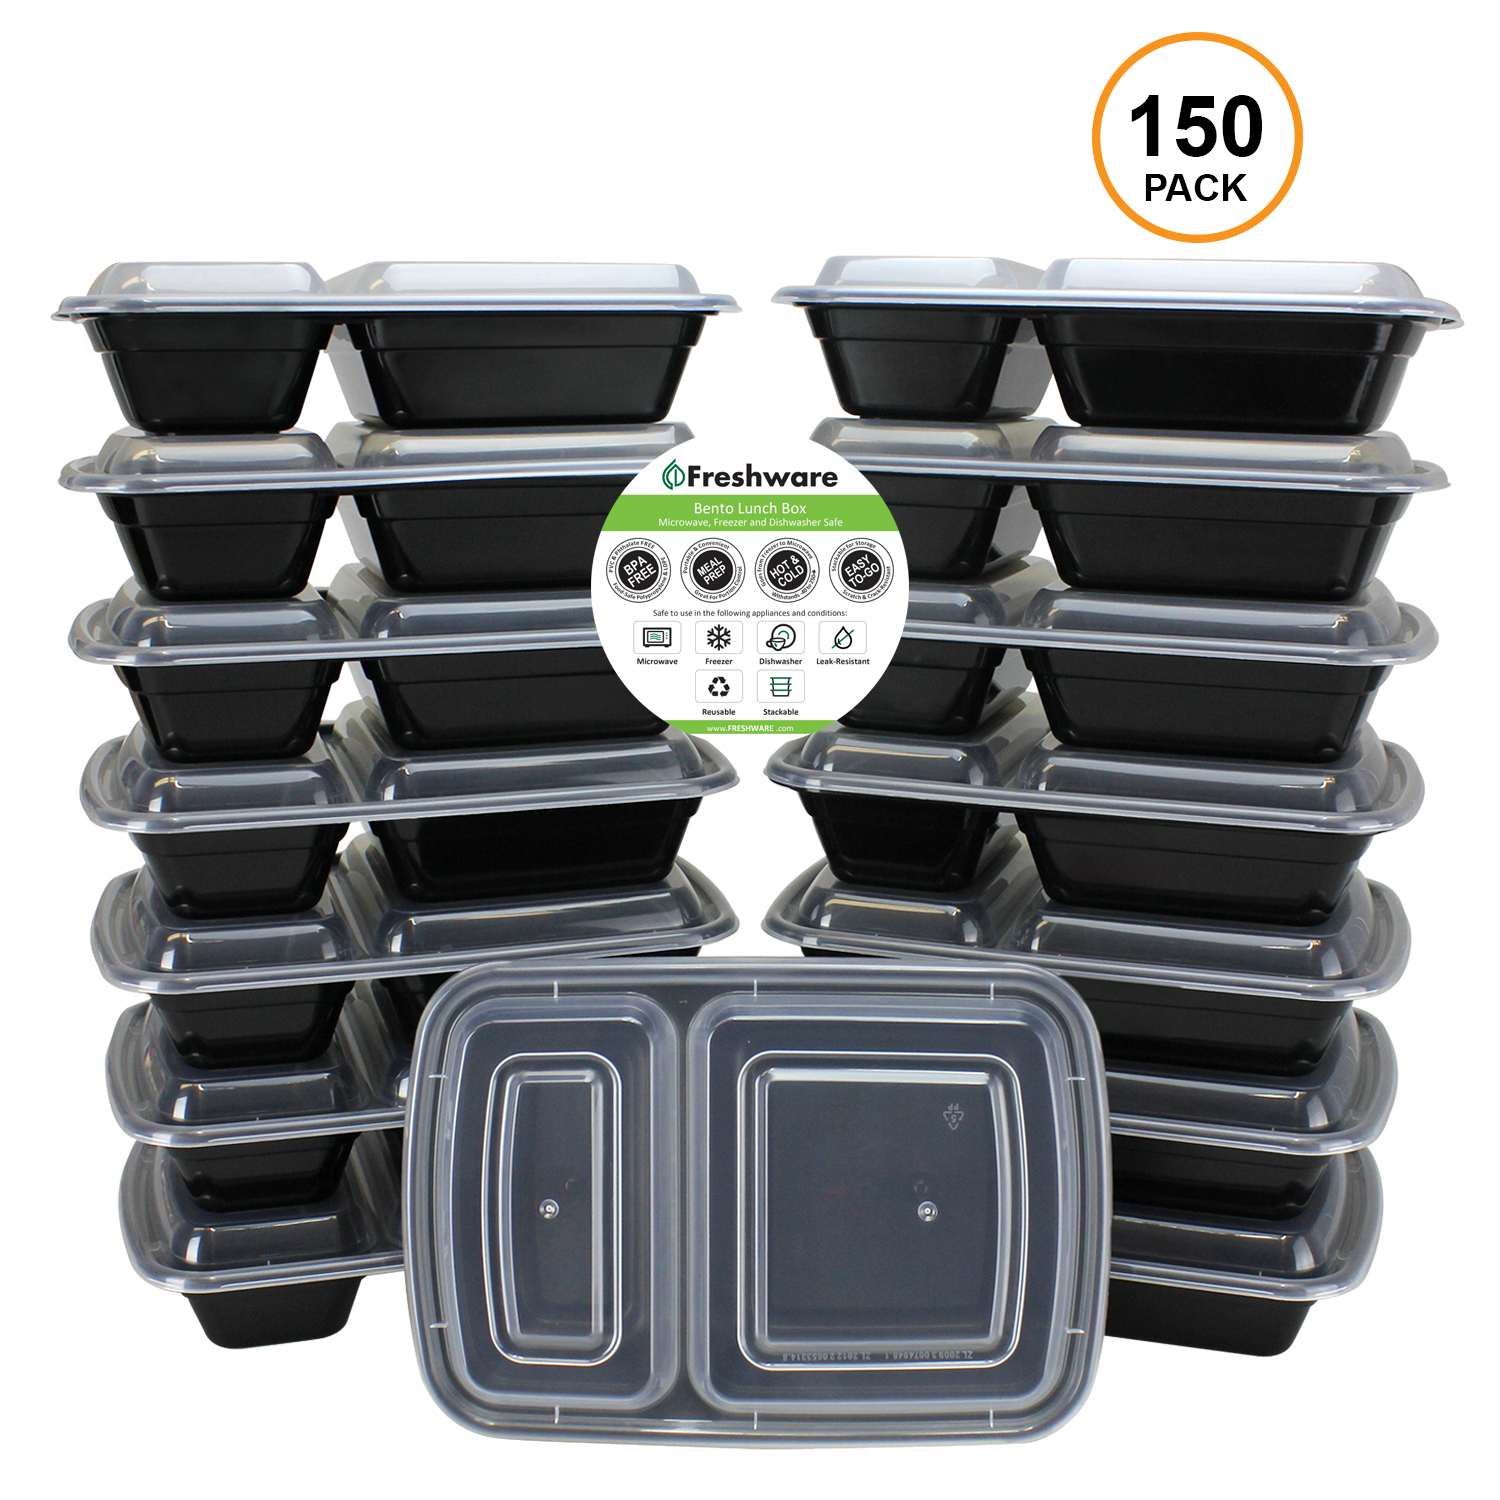 Freshware 150-Pack 2 Compartment Bento Lunch Boxes with Lids - Stackable Reusable Microwave Dishwasher & Freezer Safe - Meal Prep Portion Control 21 Day Fix & Food Storage Containers (25oz), YH-2X150